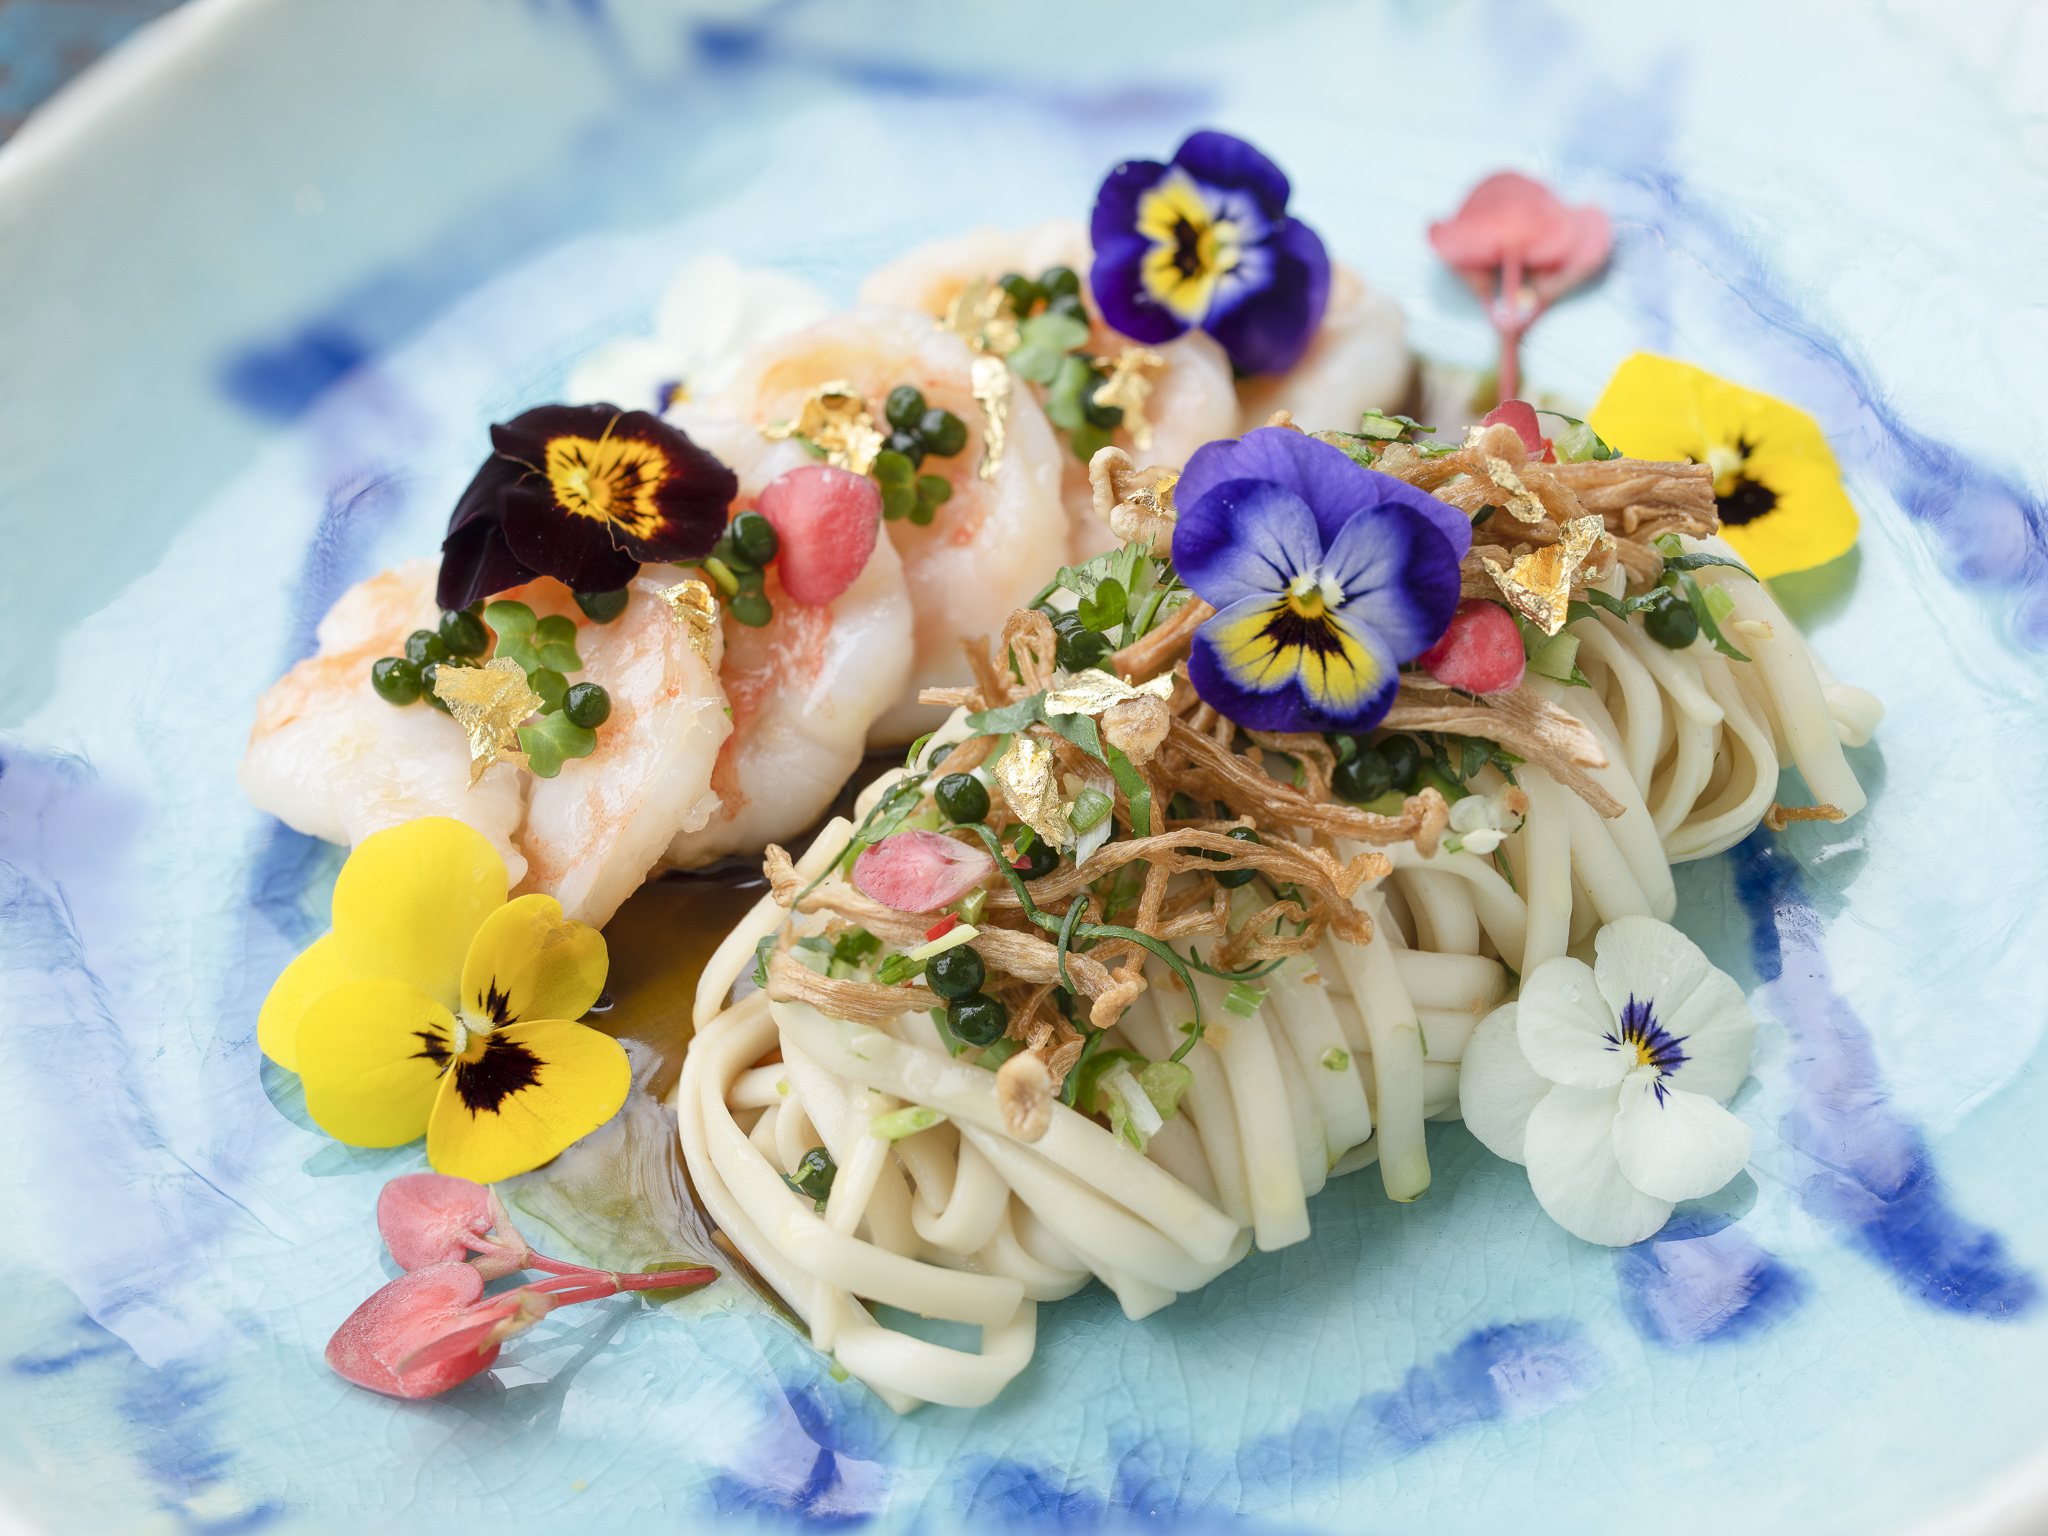 116b Kai - Cold Lai Mien Noodle with Prawns and Enoki Mushrooms.jpg